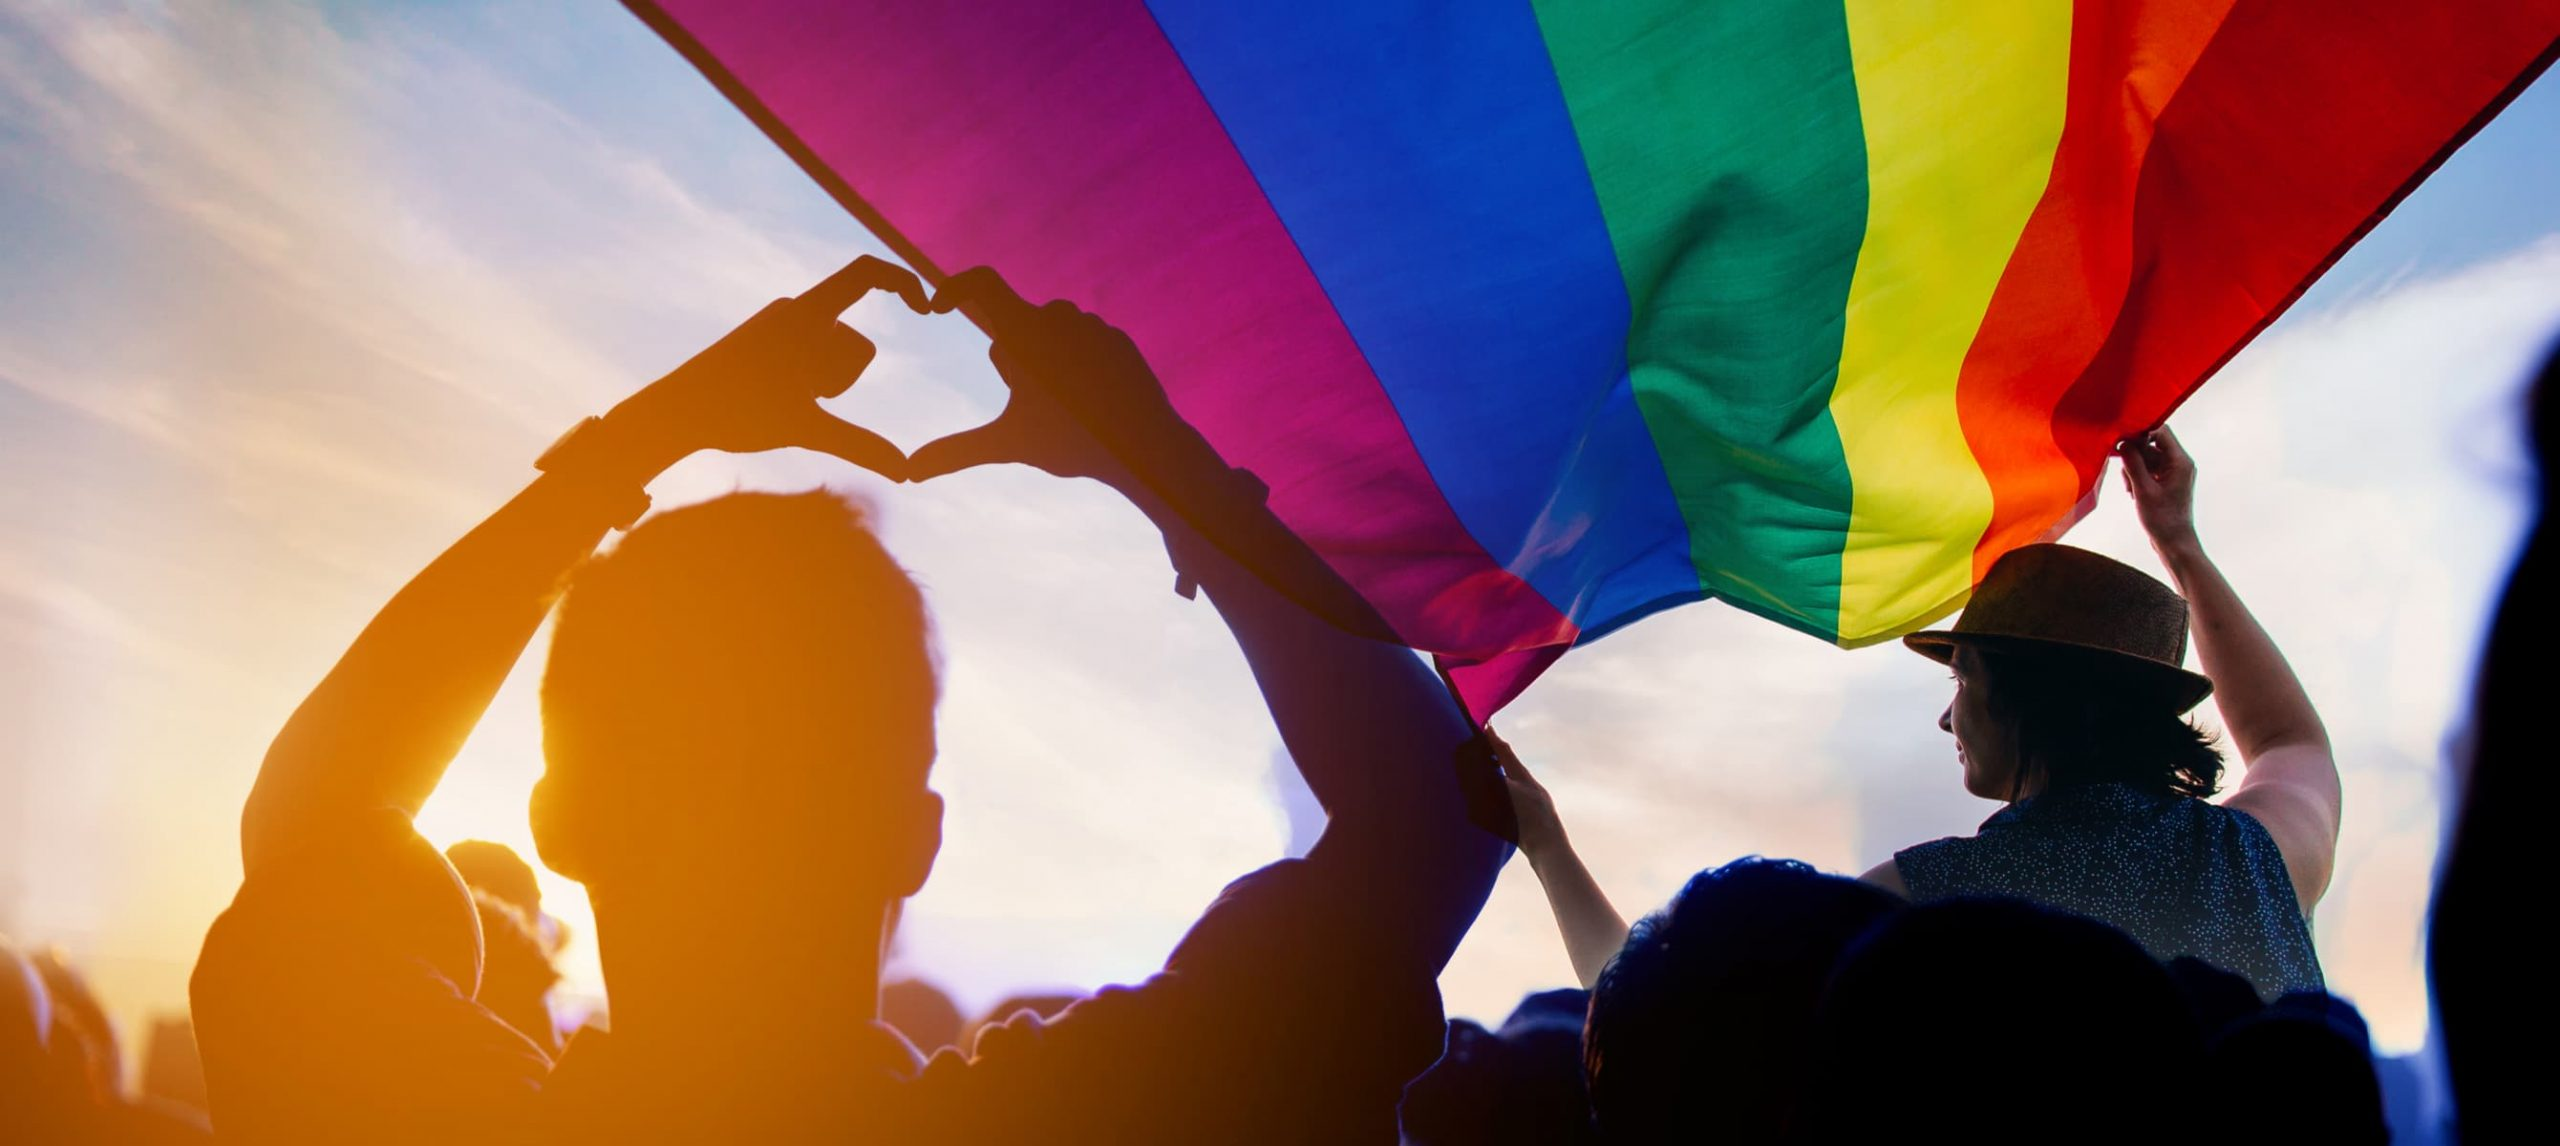 The 10 Best LGBTQ-Friendly Cities In The USA